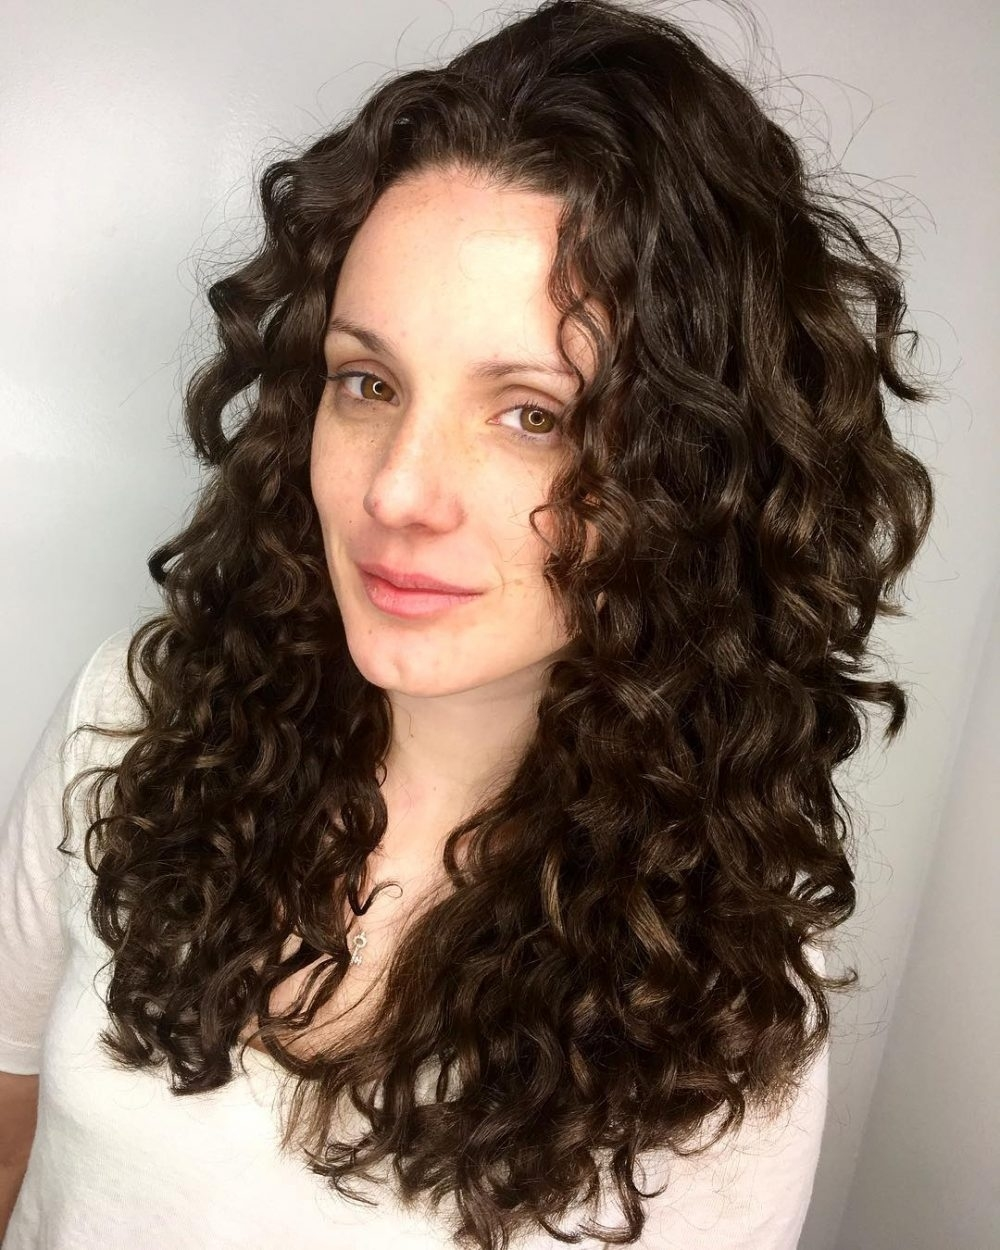 25 Cutest Long Curly Hairstyles For 2018 within Haircut For Curly Hair Long